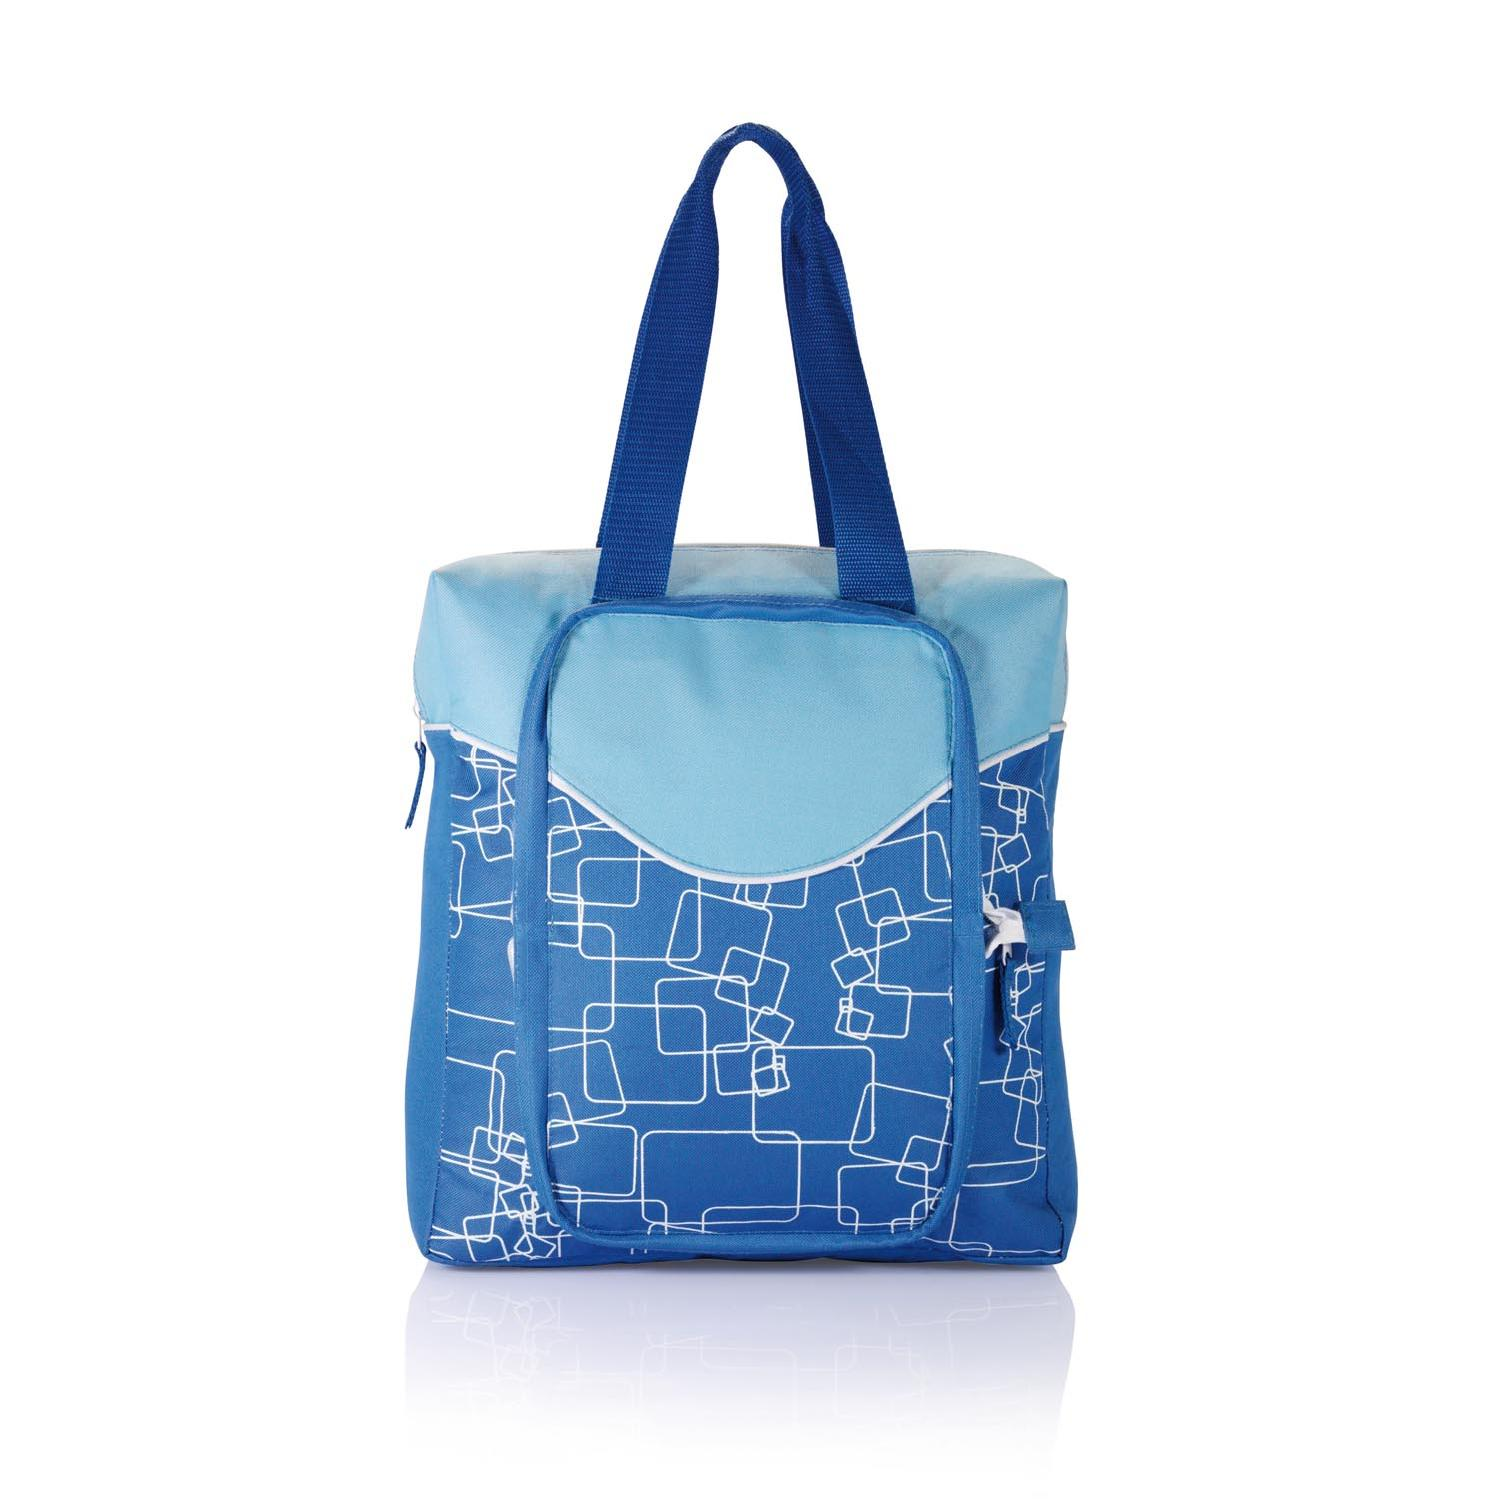 Cooler Shopping Bag with Zip up Pocket